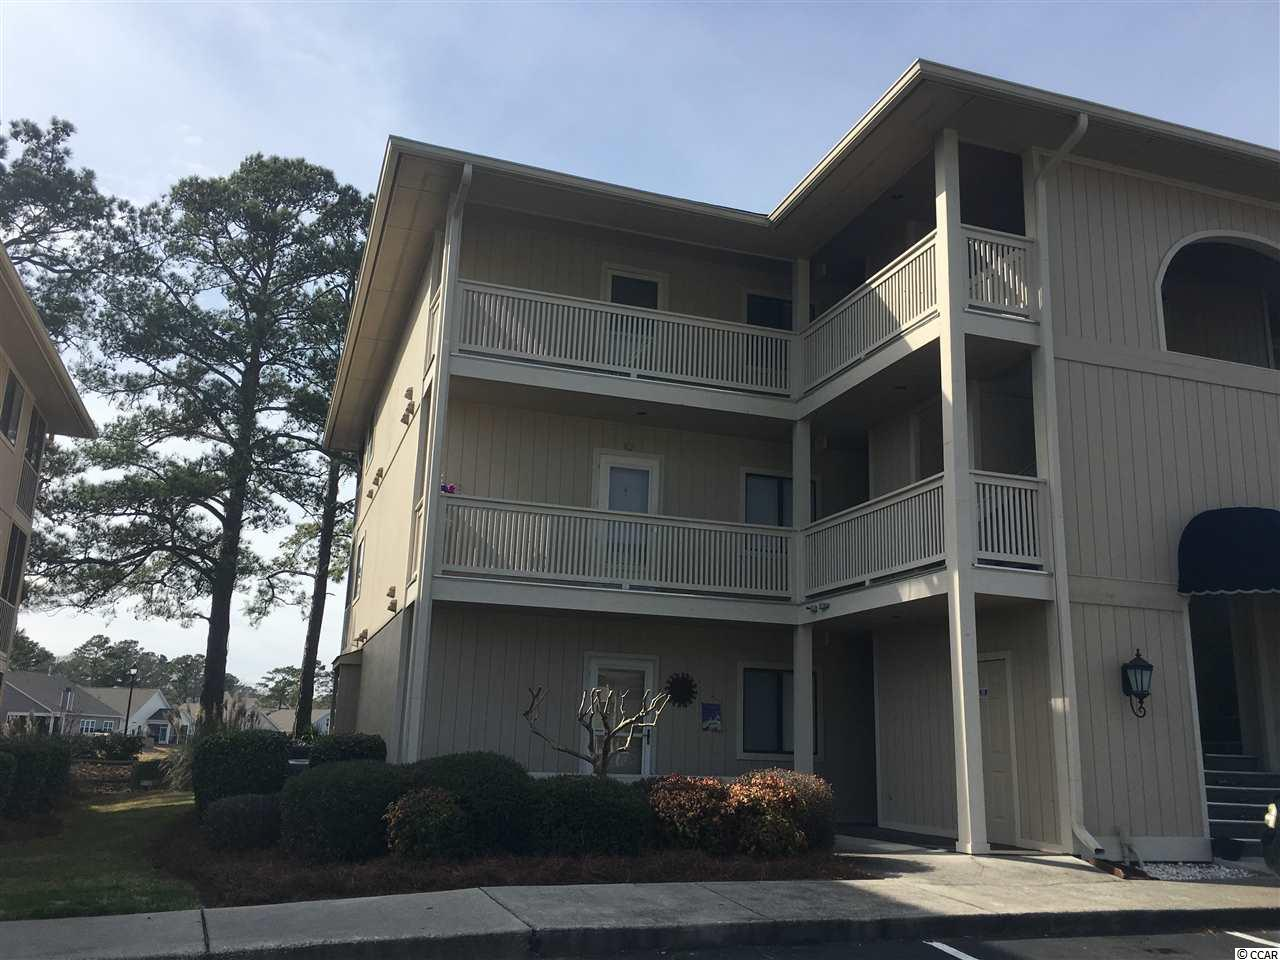 Just bring your suitcase, this corner end unit condo is sold furnished and ready to go! Located in the heart of Little River close to dining and shopping. This condo offers vaulted ceilings in the living room, pond and fountains views from the screen porch. Affordable way to have your place at the beach!